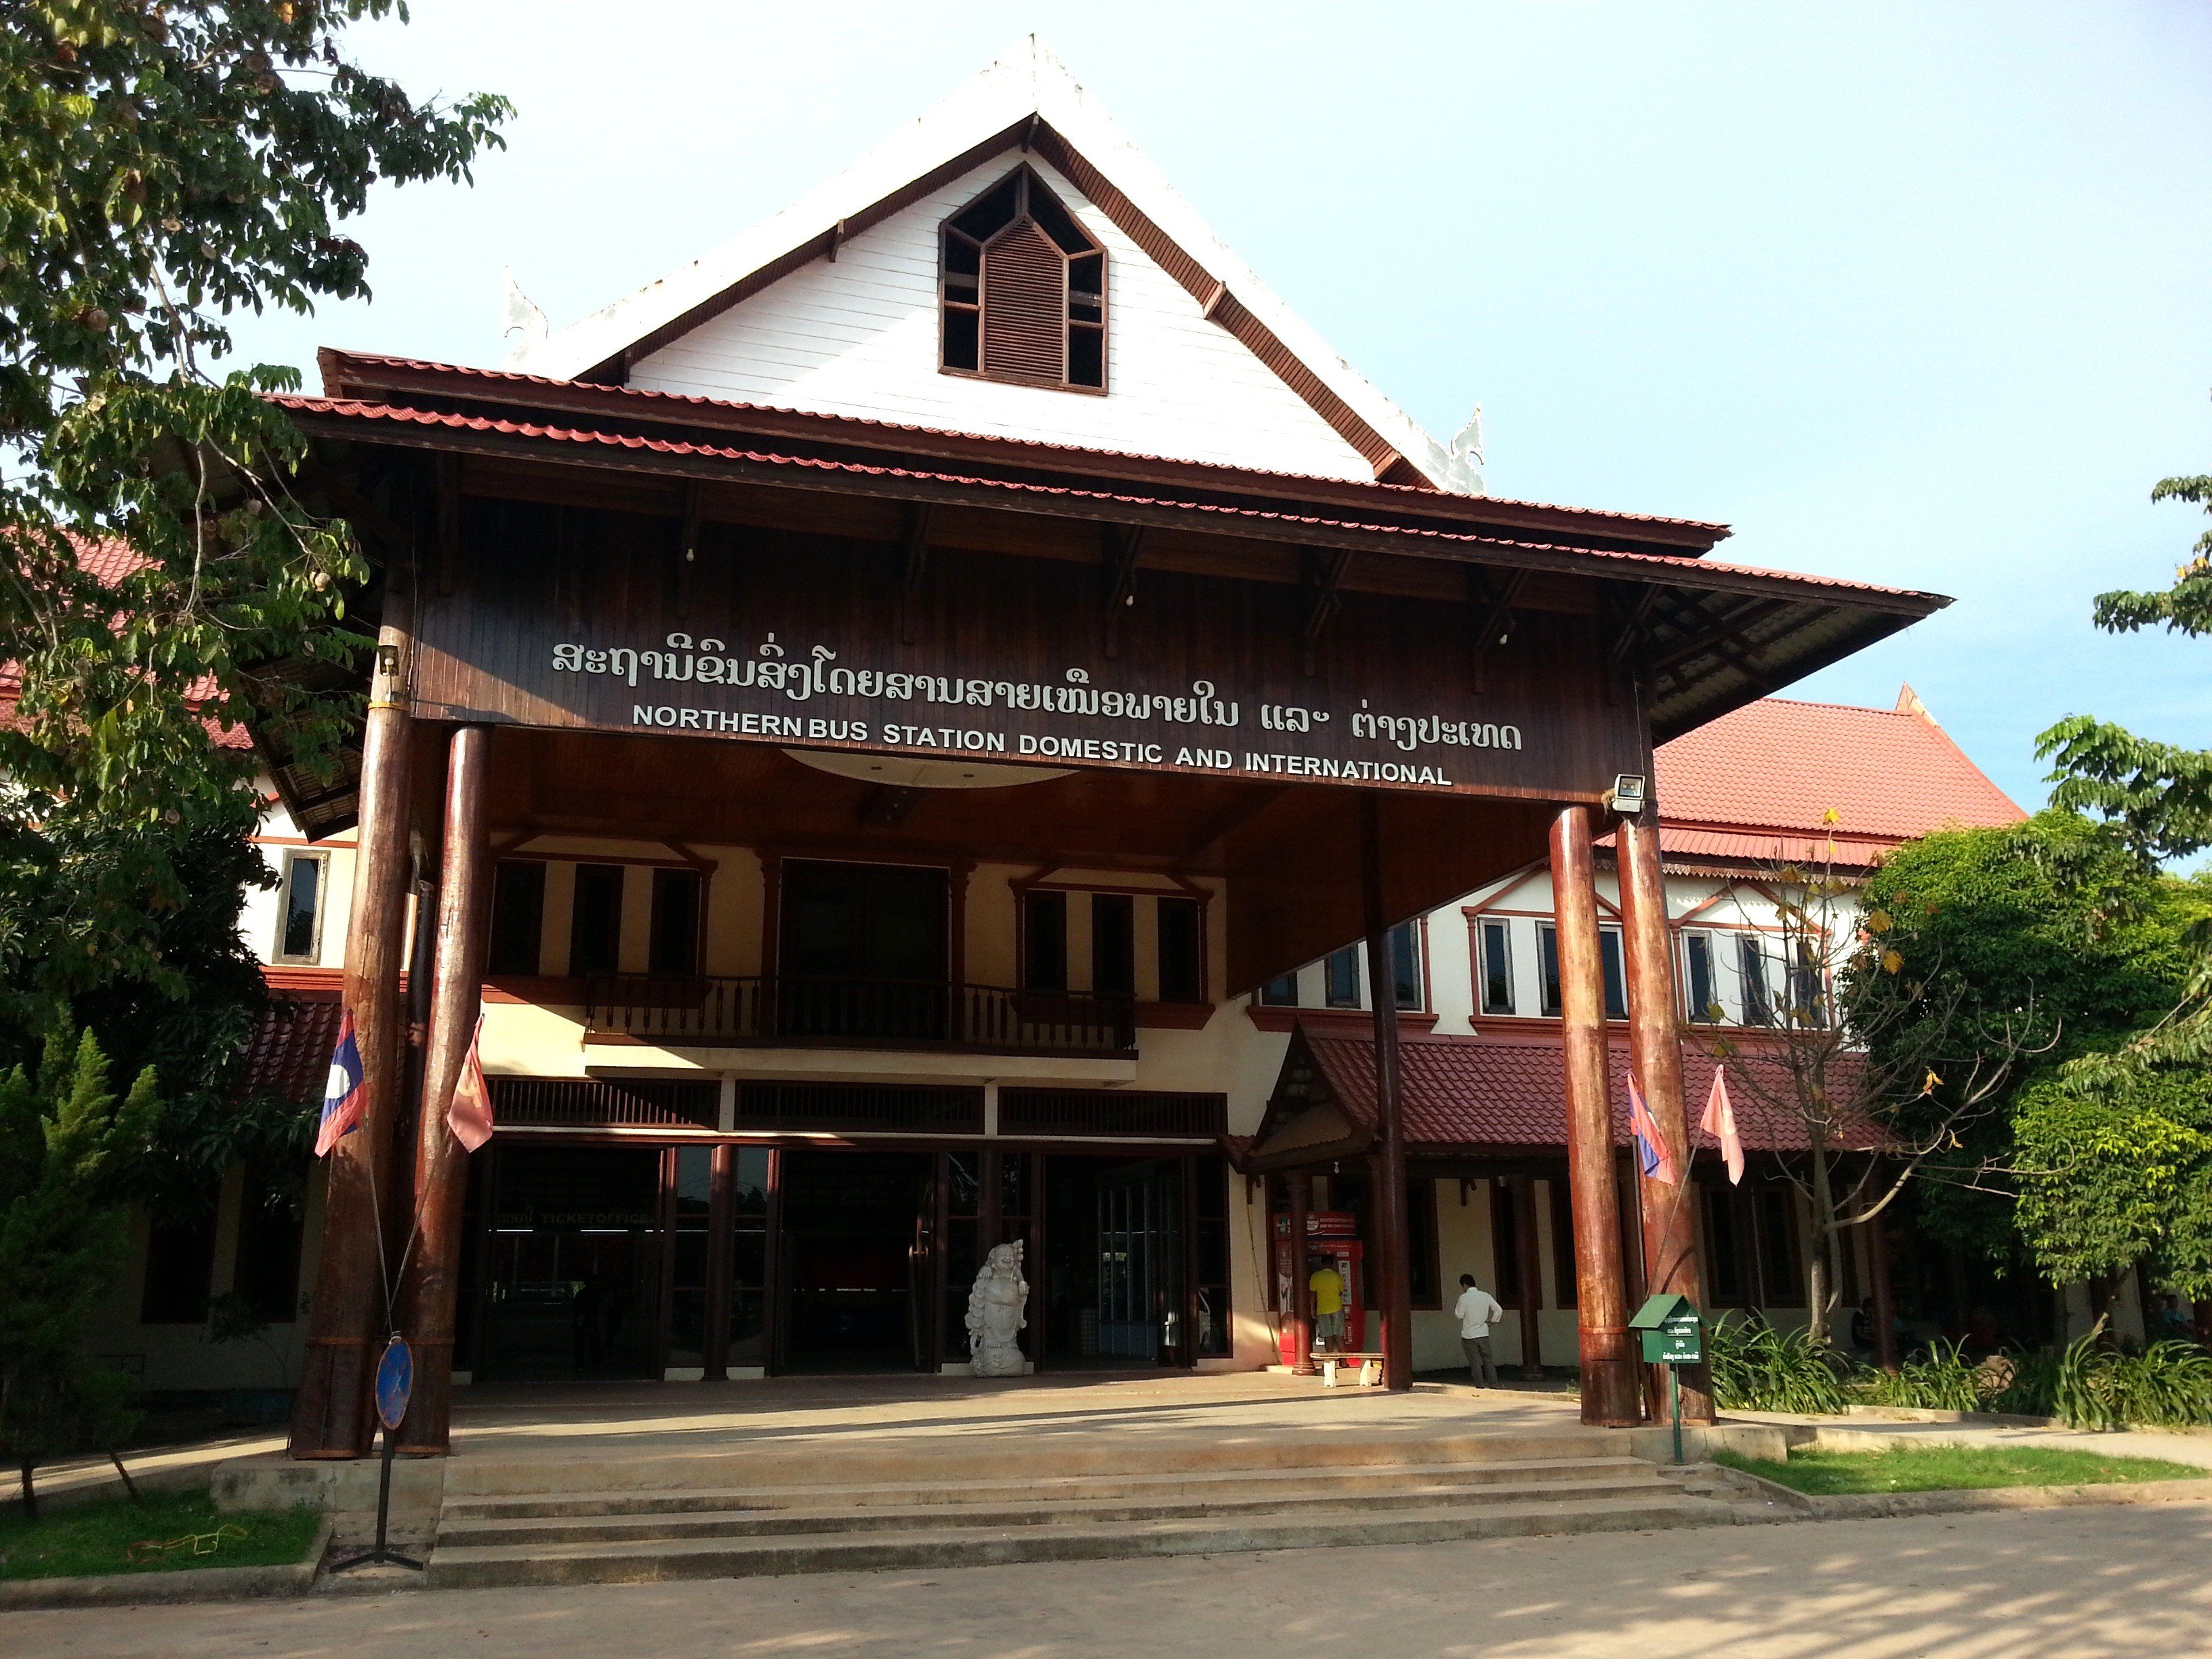 Front entrance to Vientiane Northern Bus Terminal